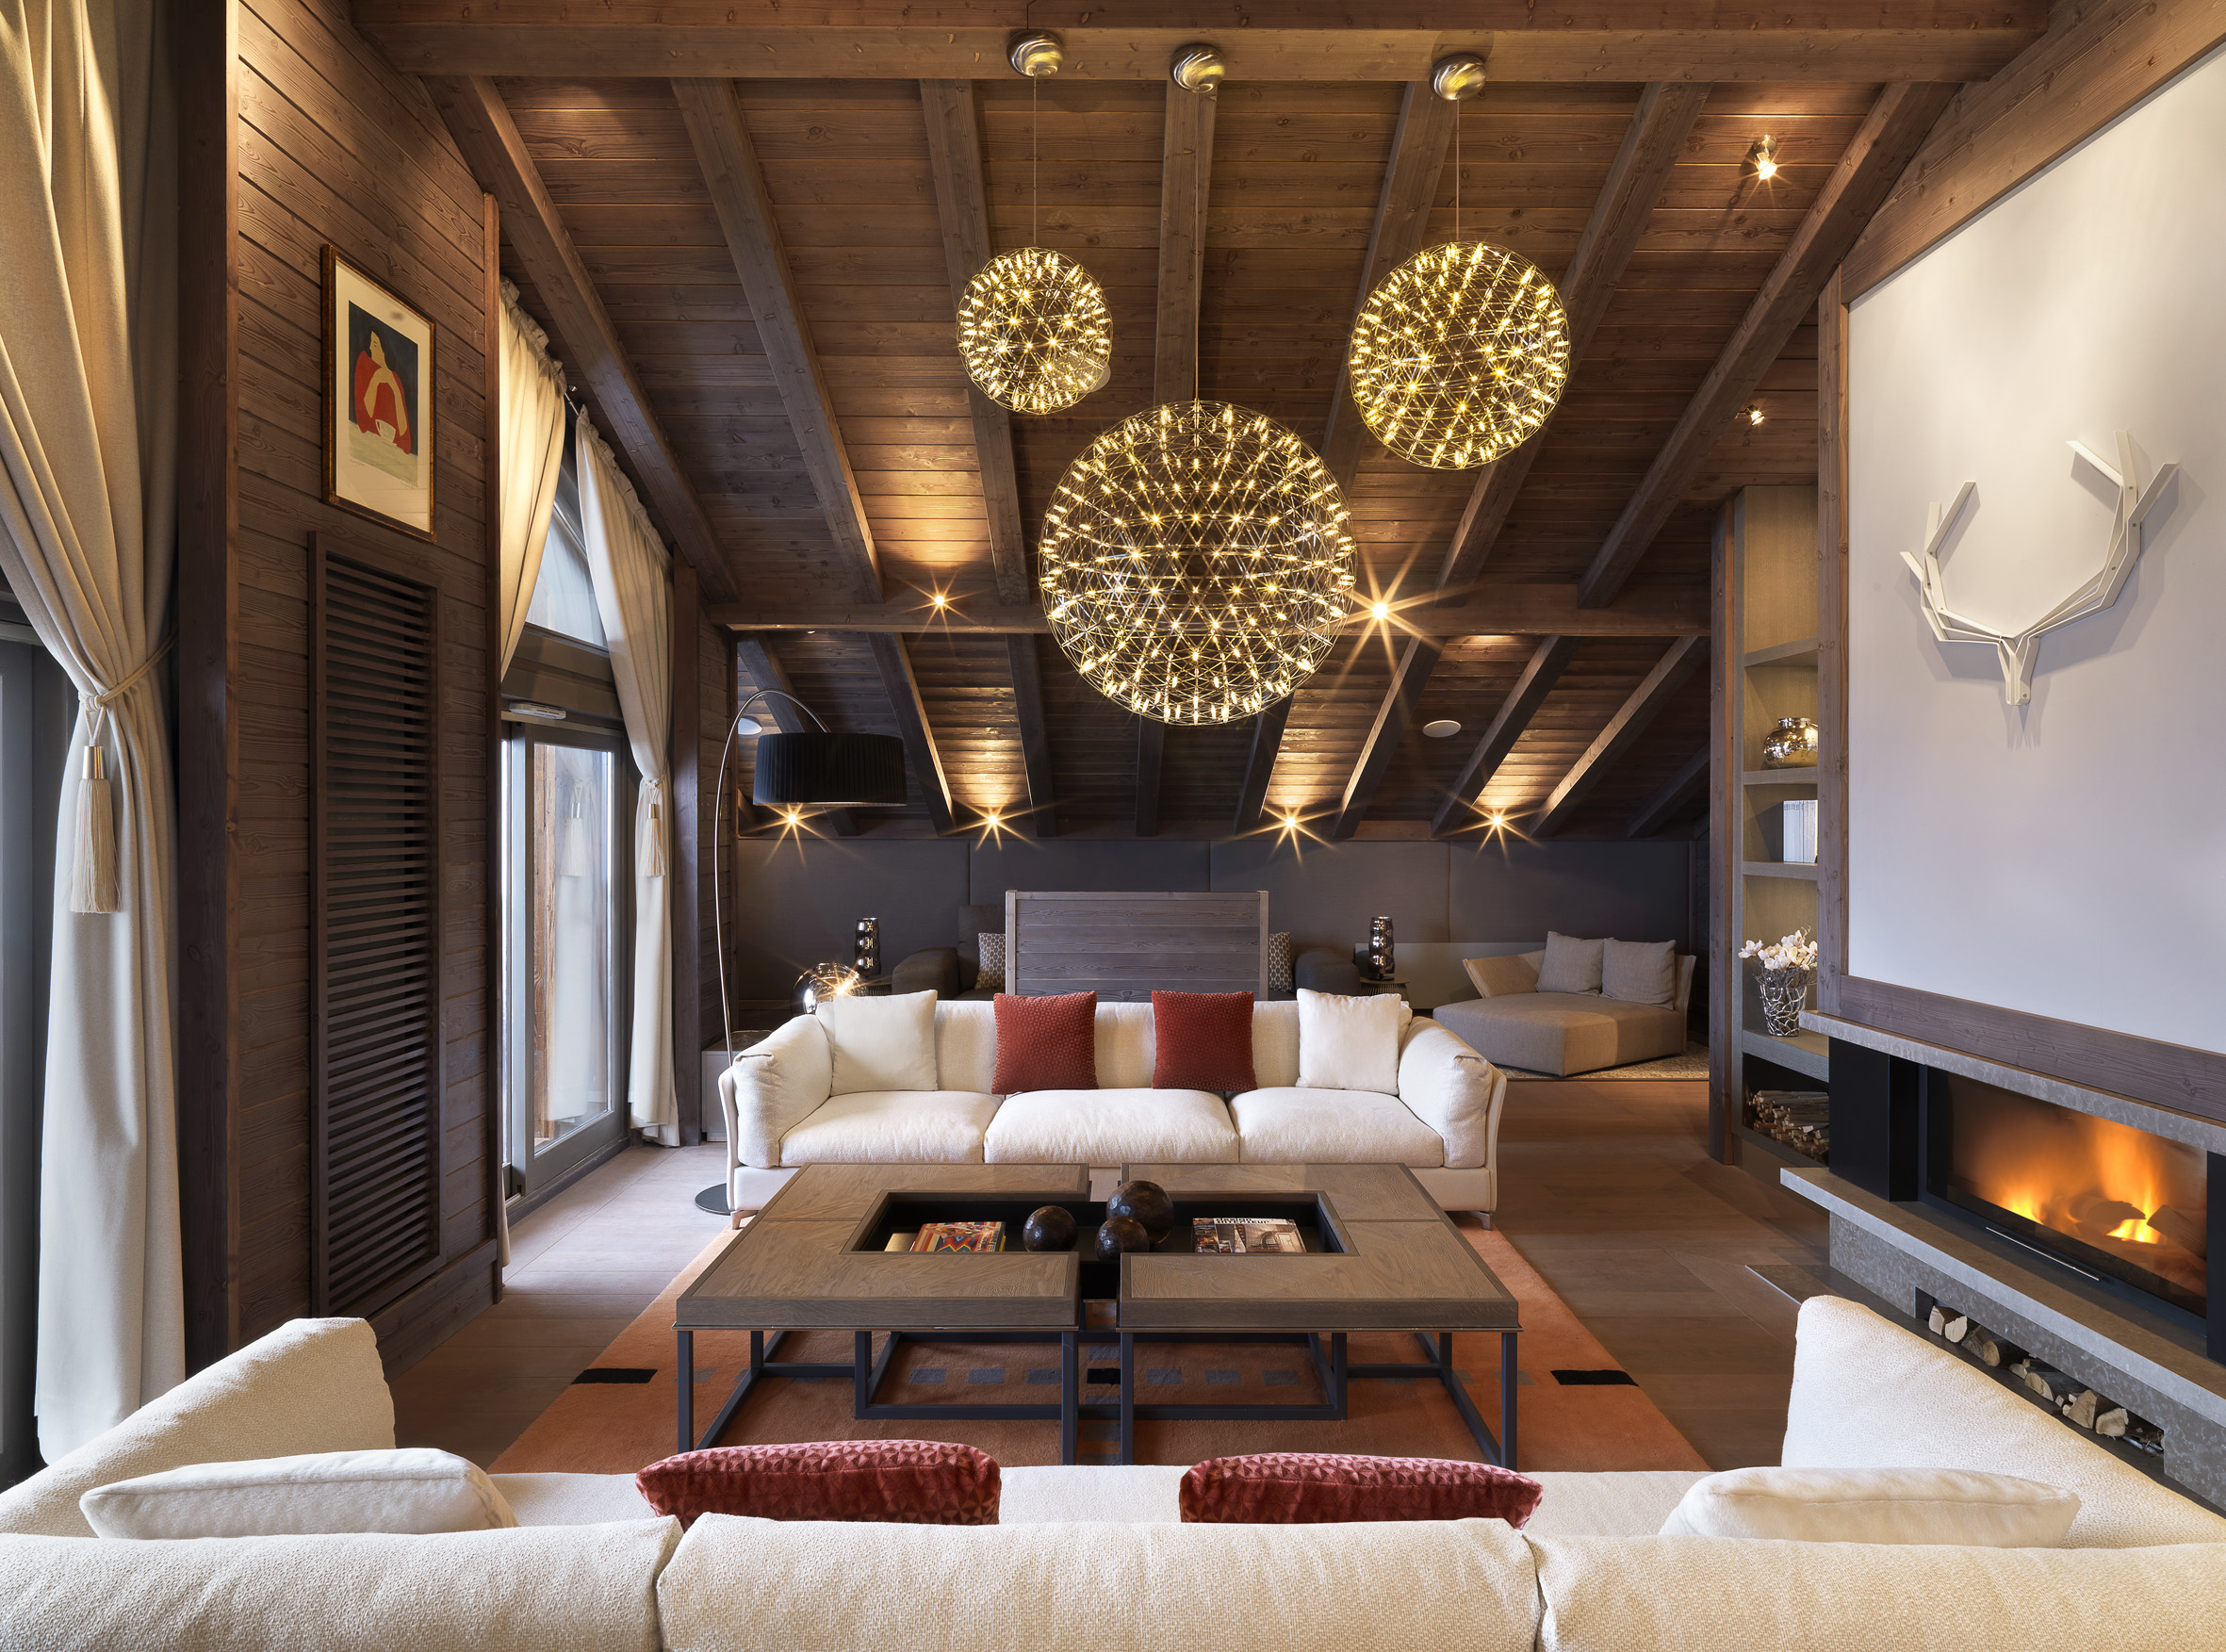 Six Senses Residences Courchevel is equipped with a spa, gym, pool amongst other amenities